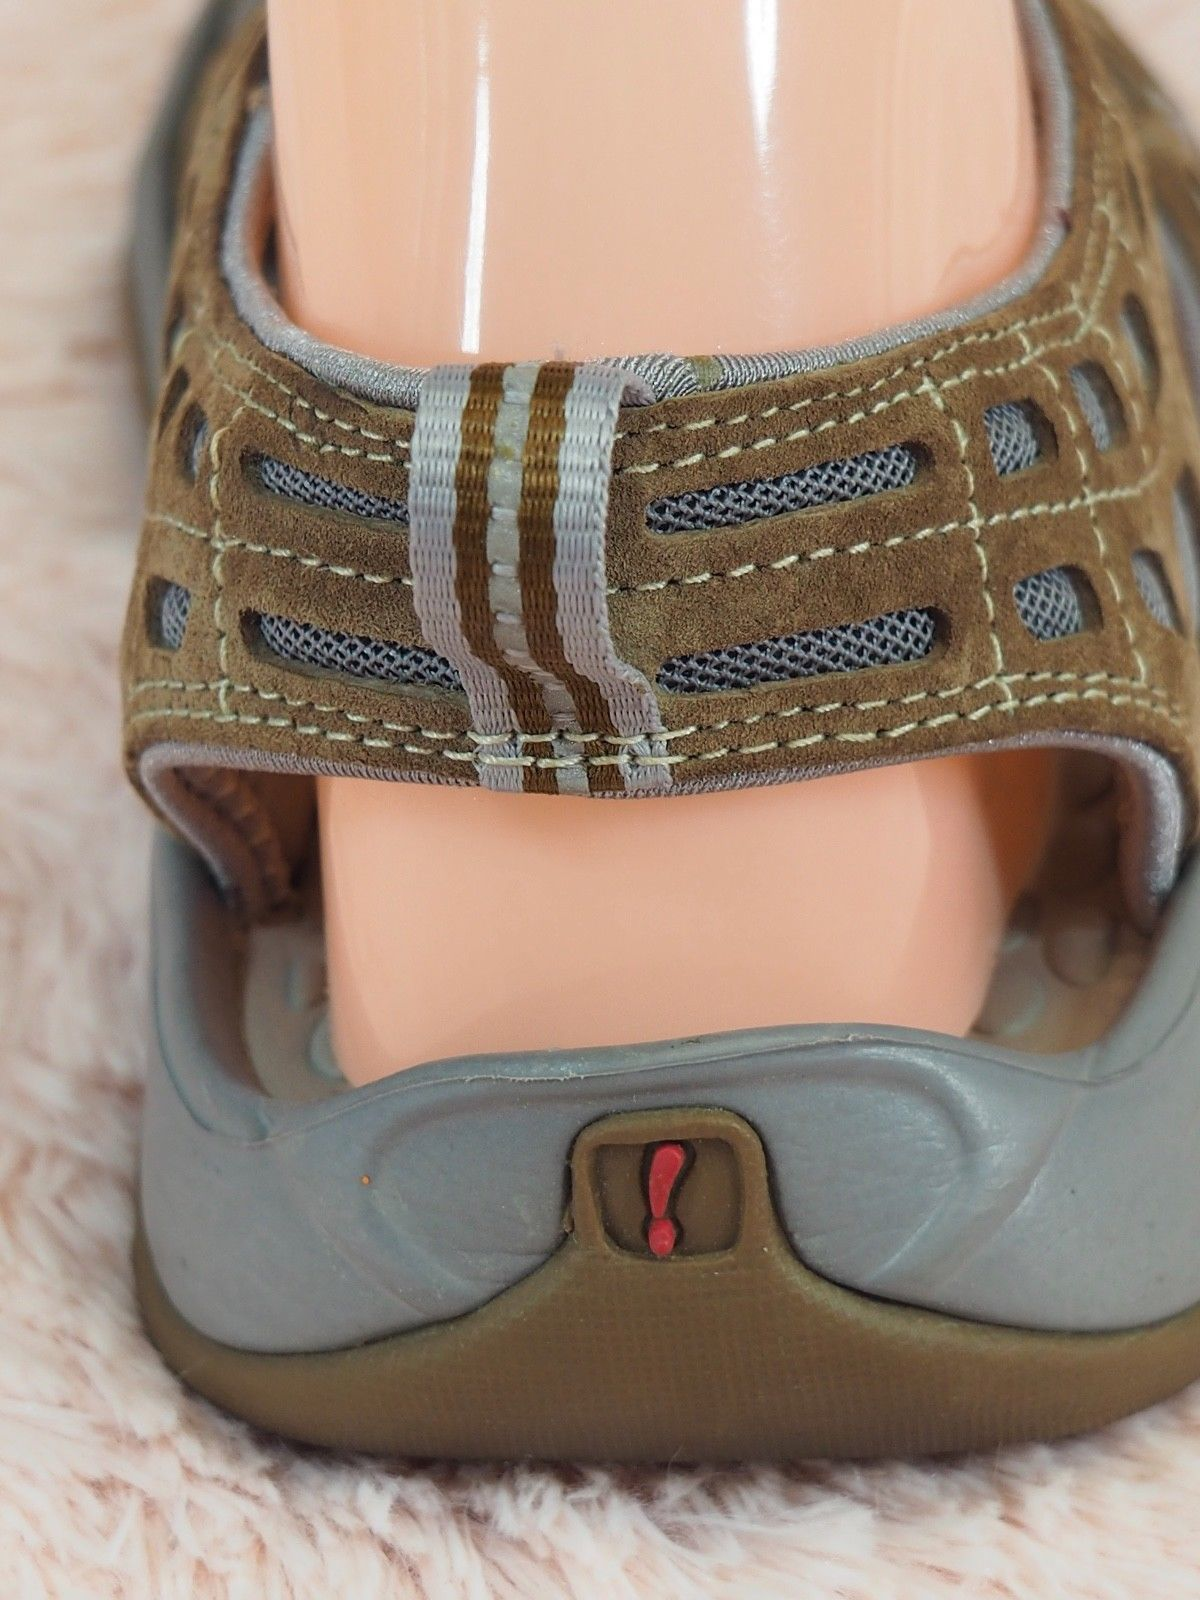 defbe29d39f PRIVO BY CLARKS Sport Sandals Fisherman Women s Size 9 1 2 Brown Suede Gray